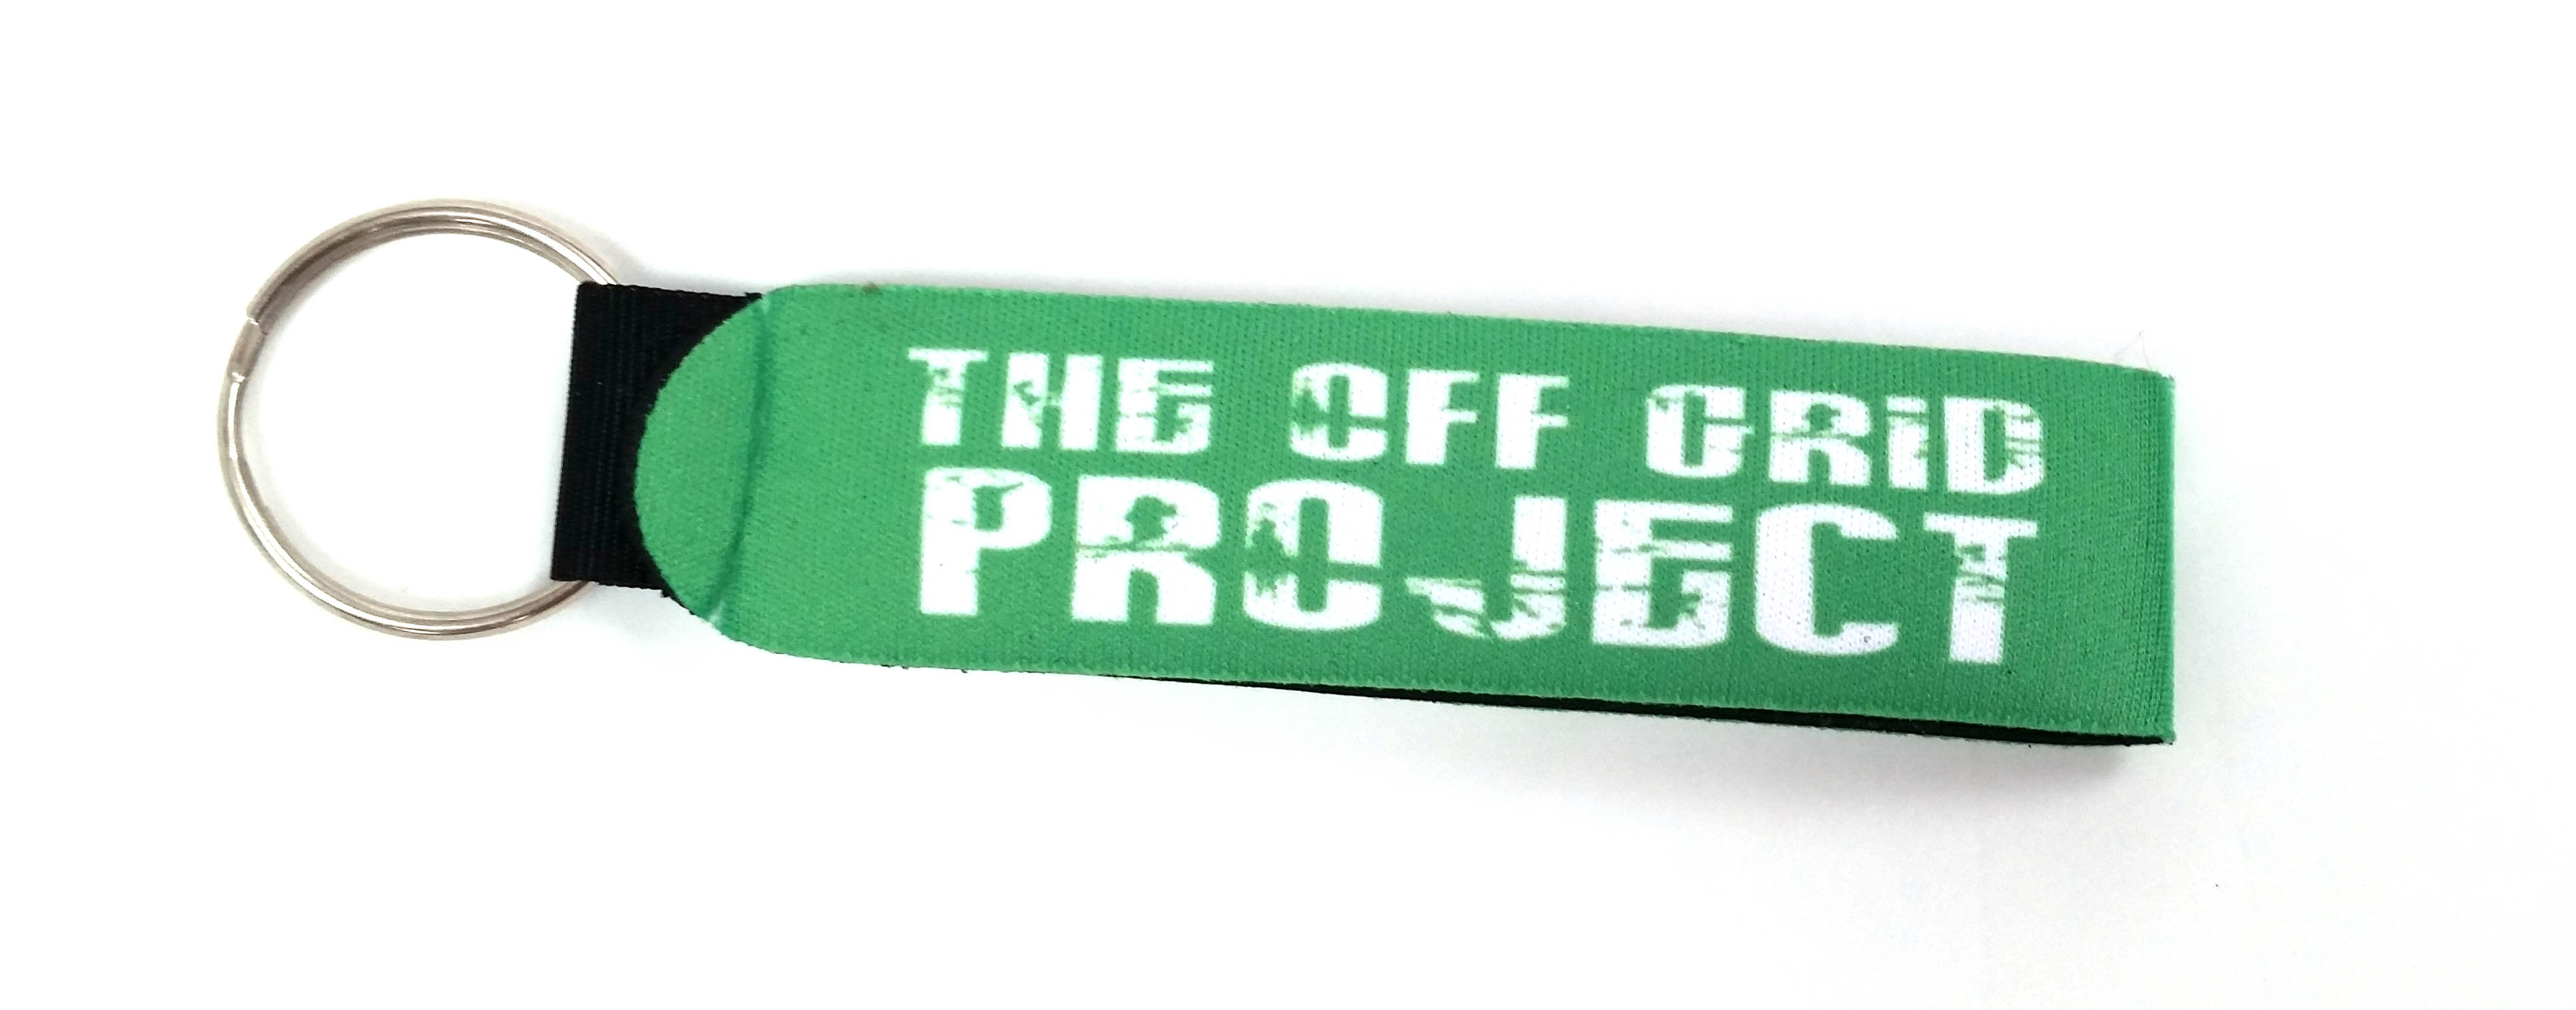 The do it yourself world merchandise the off grid project key chain green click for larger image solutioingenieria Image collections